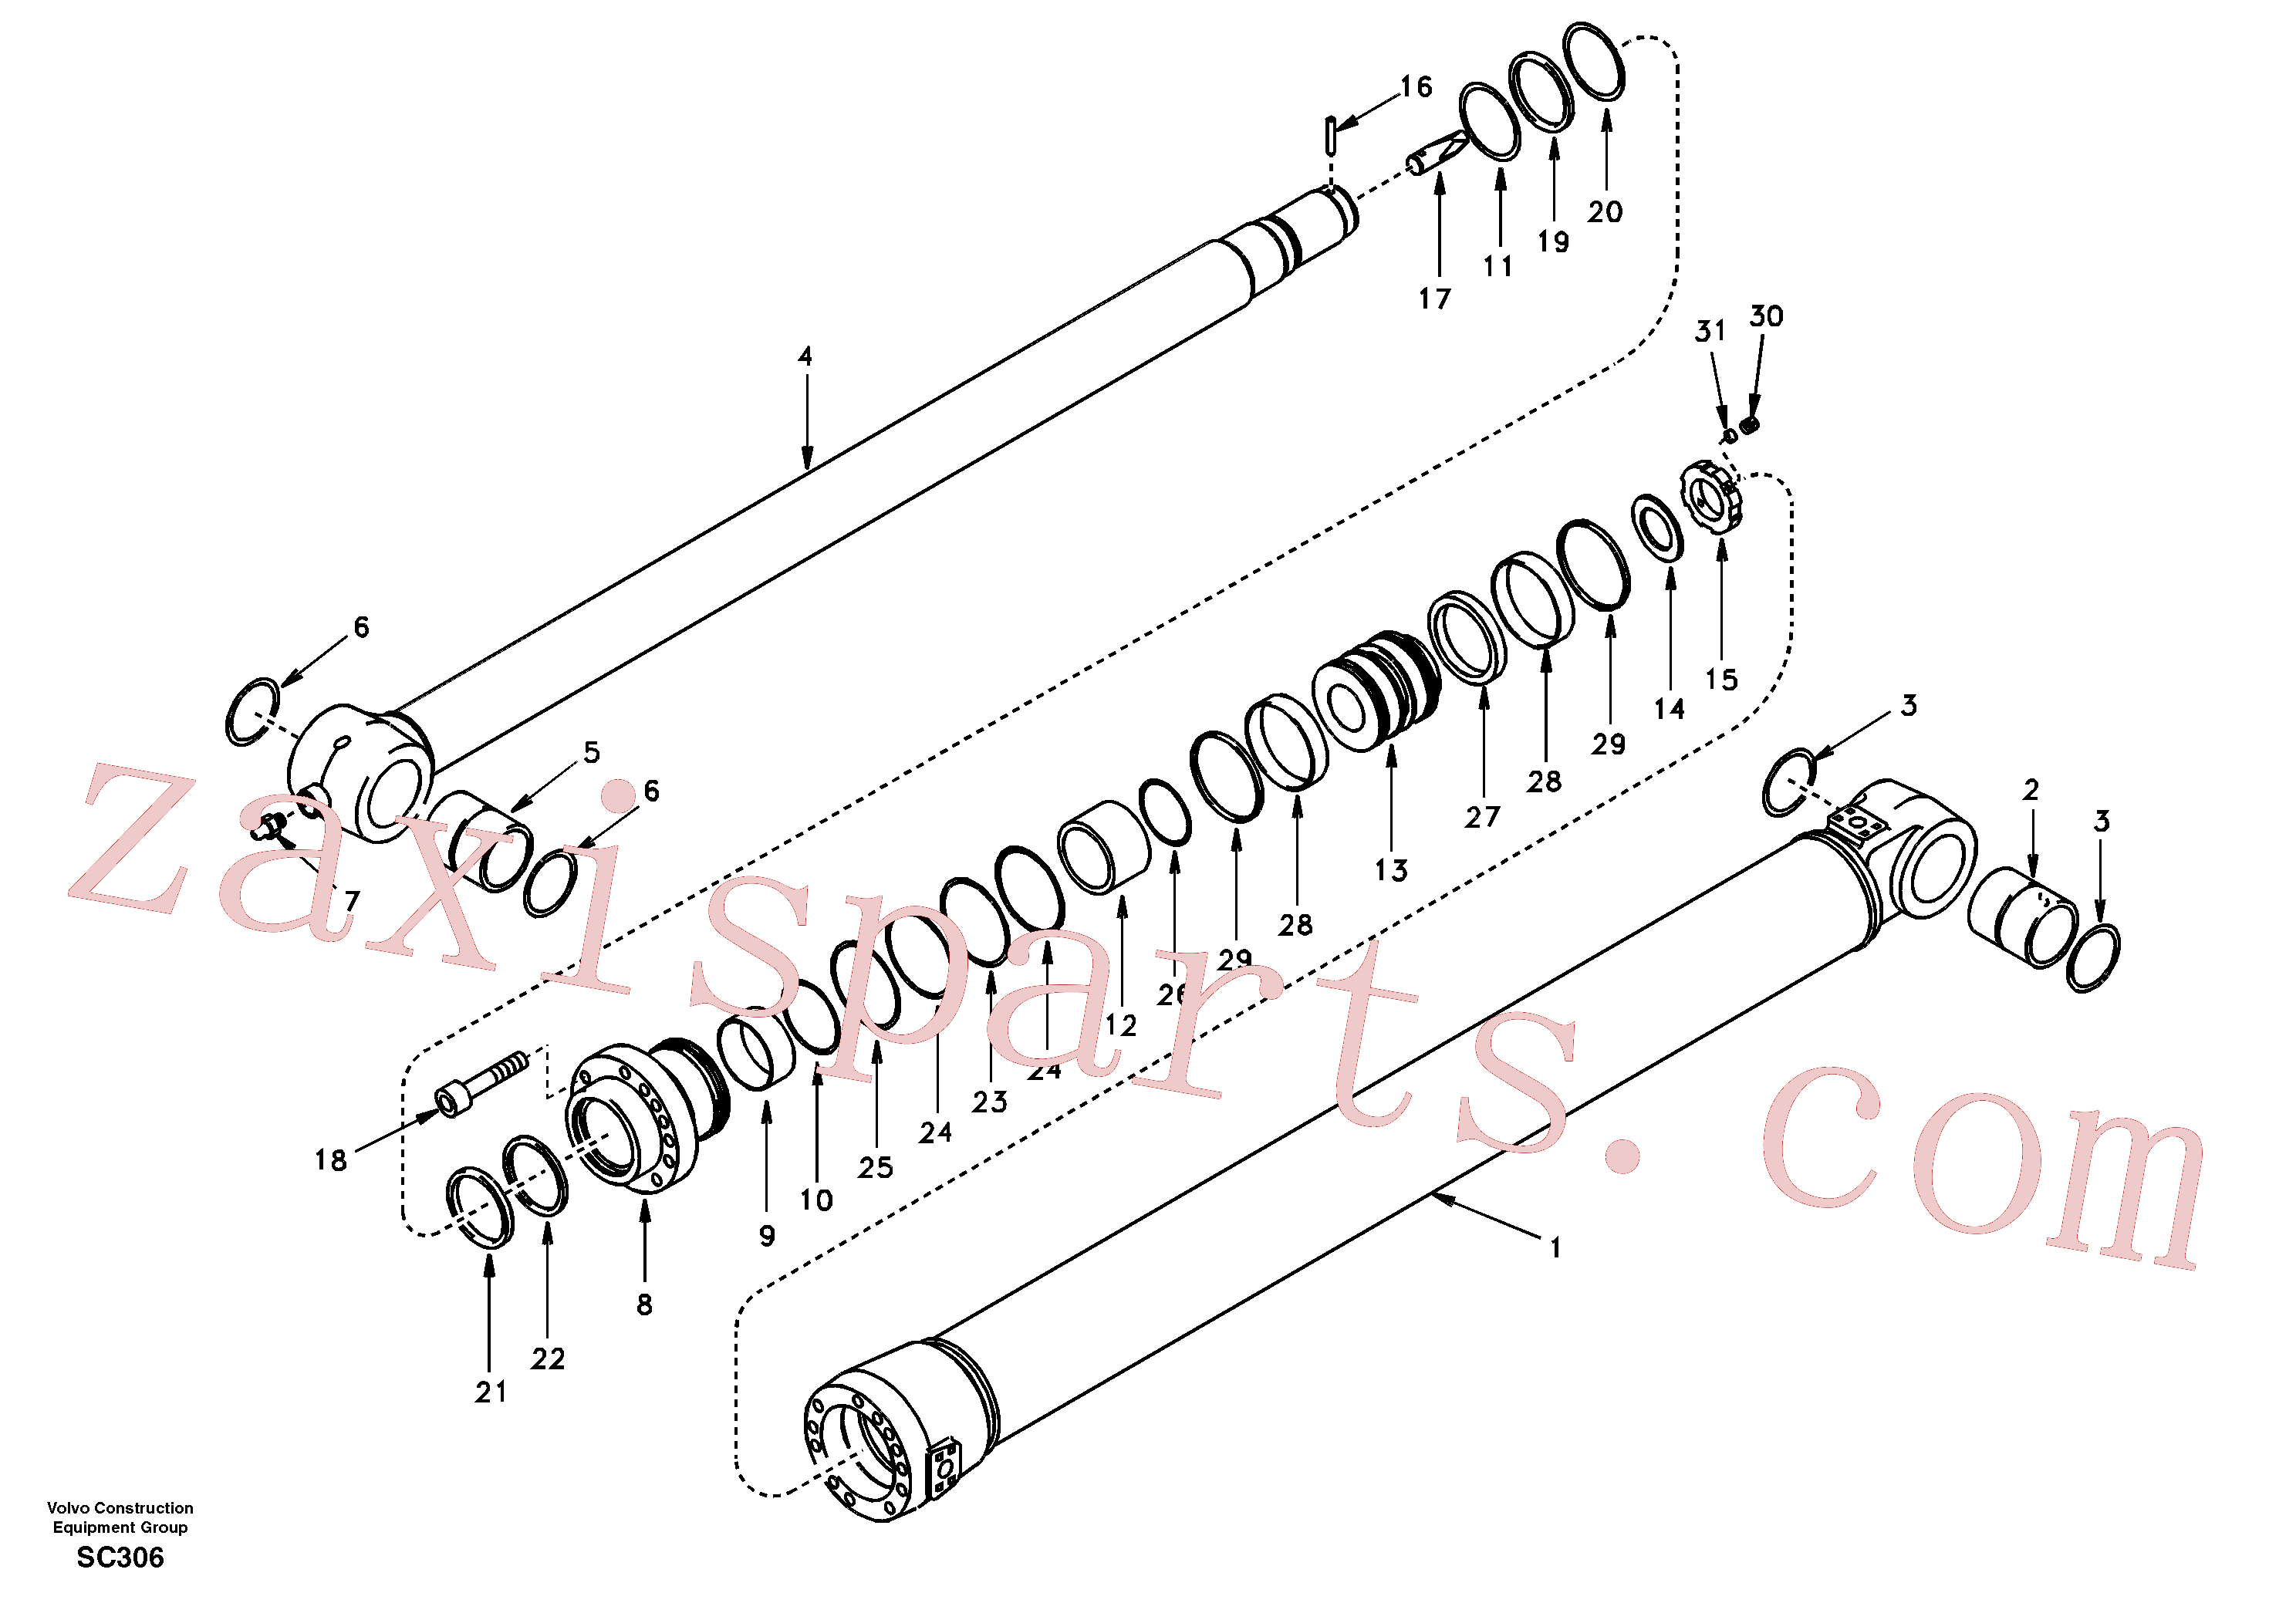 SA8148-11021 for Volvo Dipper arm cylinder(SC306 assembly)